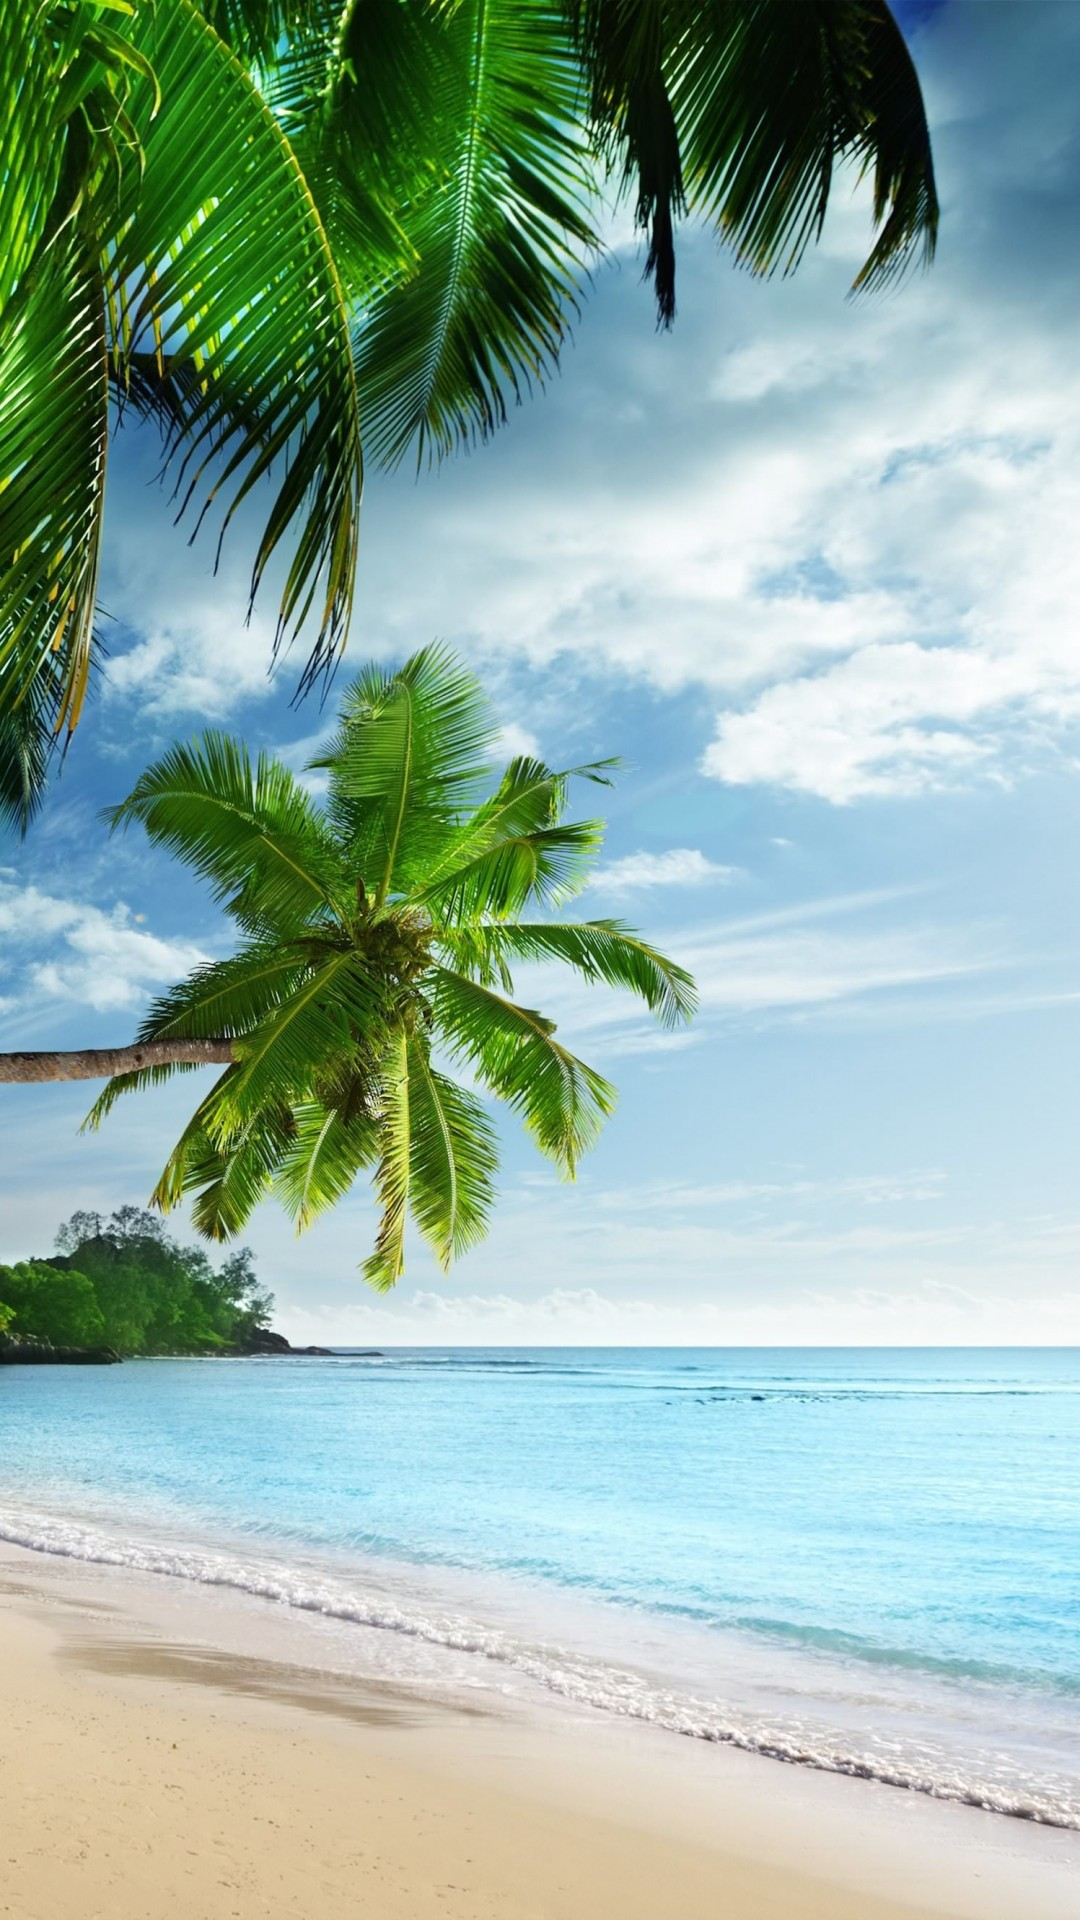 Tropical Paradise Beach Wallpaper for SAMSUNG Galaxy Note 3